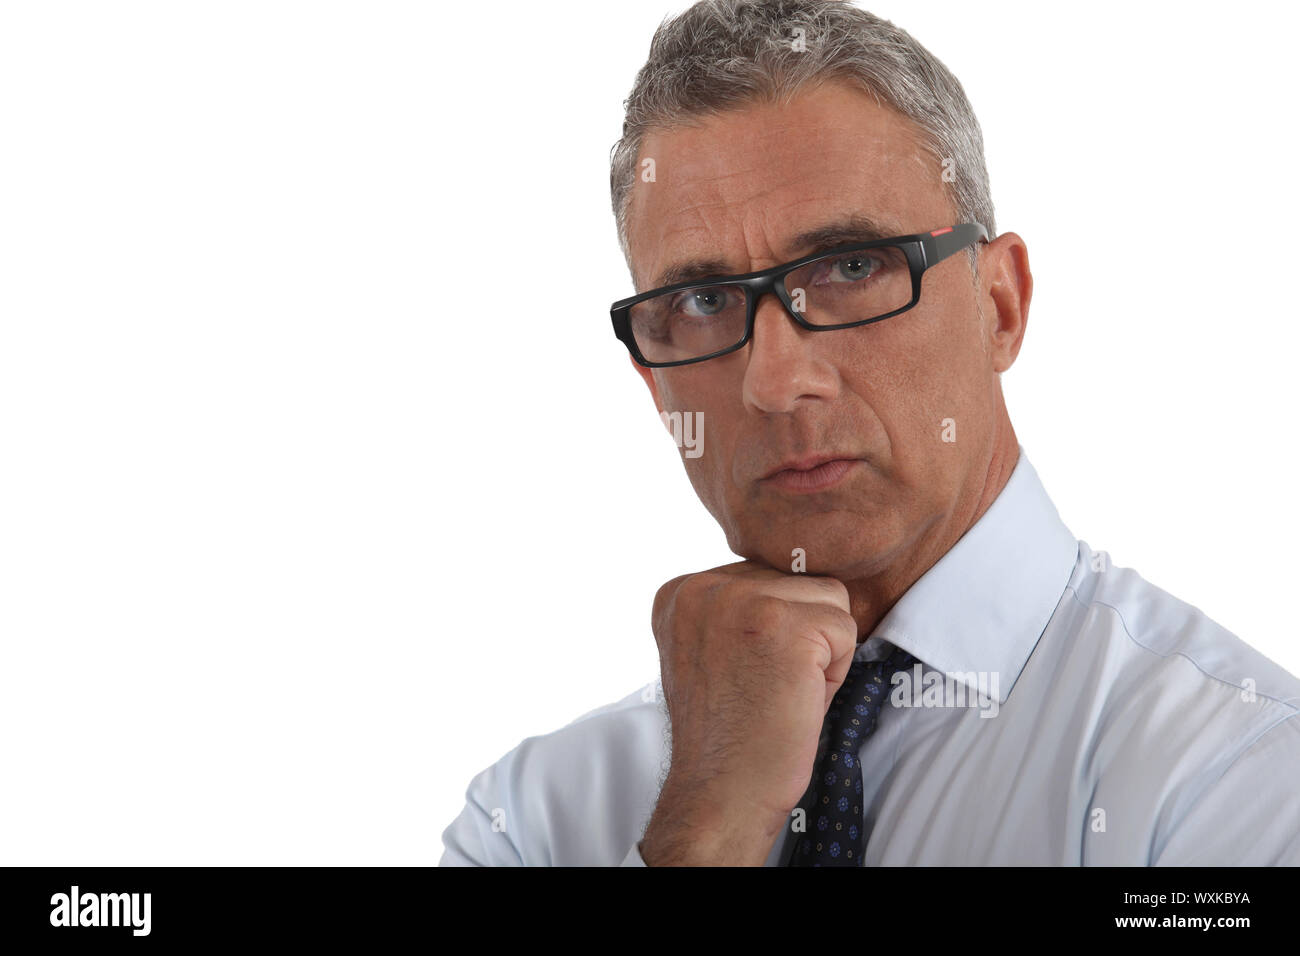 Portrait of a man wearing thick-rimmed glasses Stock Photo